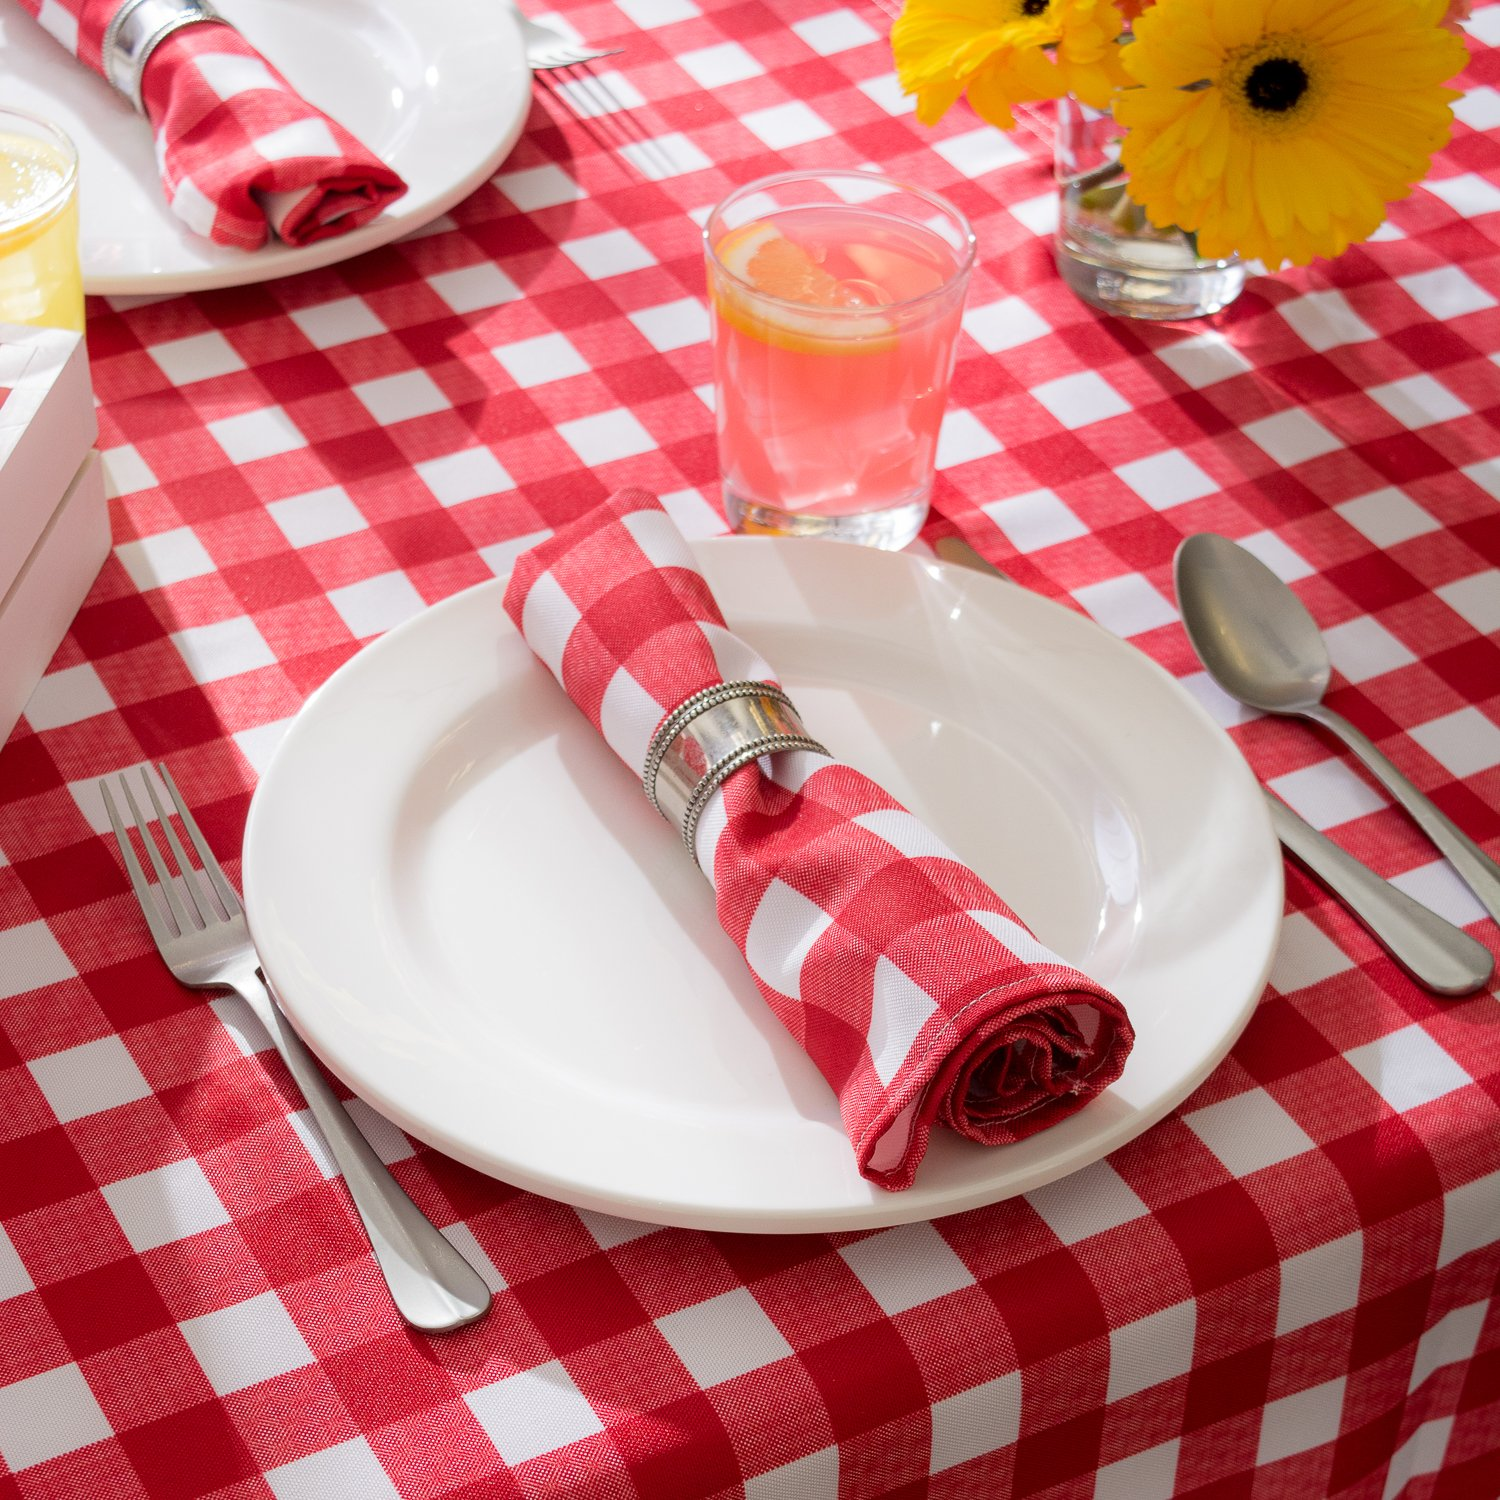 DII Spring & Summer Outdoor Tablecloth, Spill Proof and Waterproof with Zipper and Umbrella Hole, Host Backyard Parties, BBQs, & Family Gatherings - (60x120'' - Seats 10 to 12) Red Check by DII (Image #8)